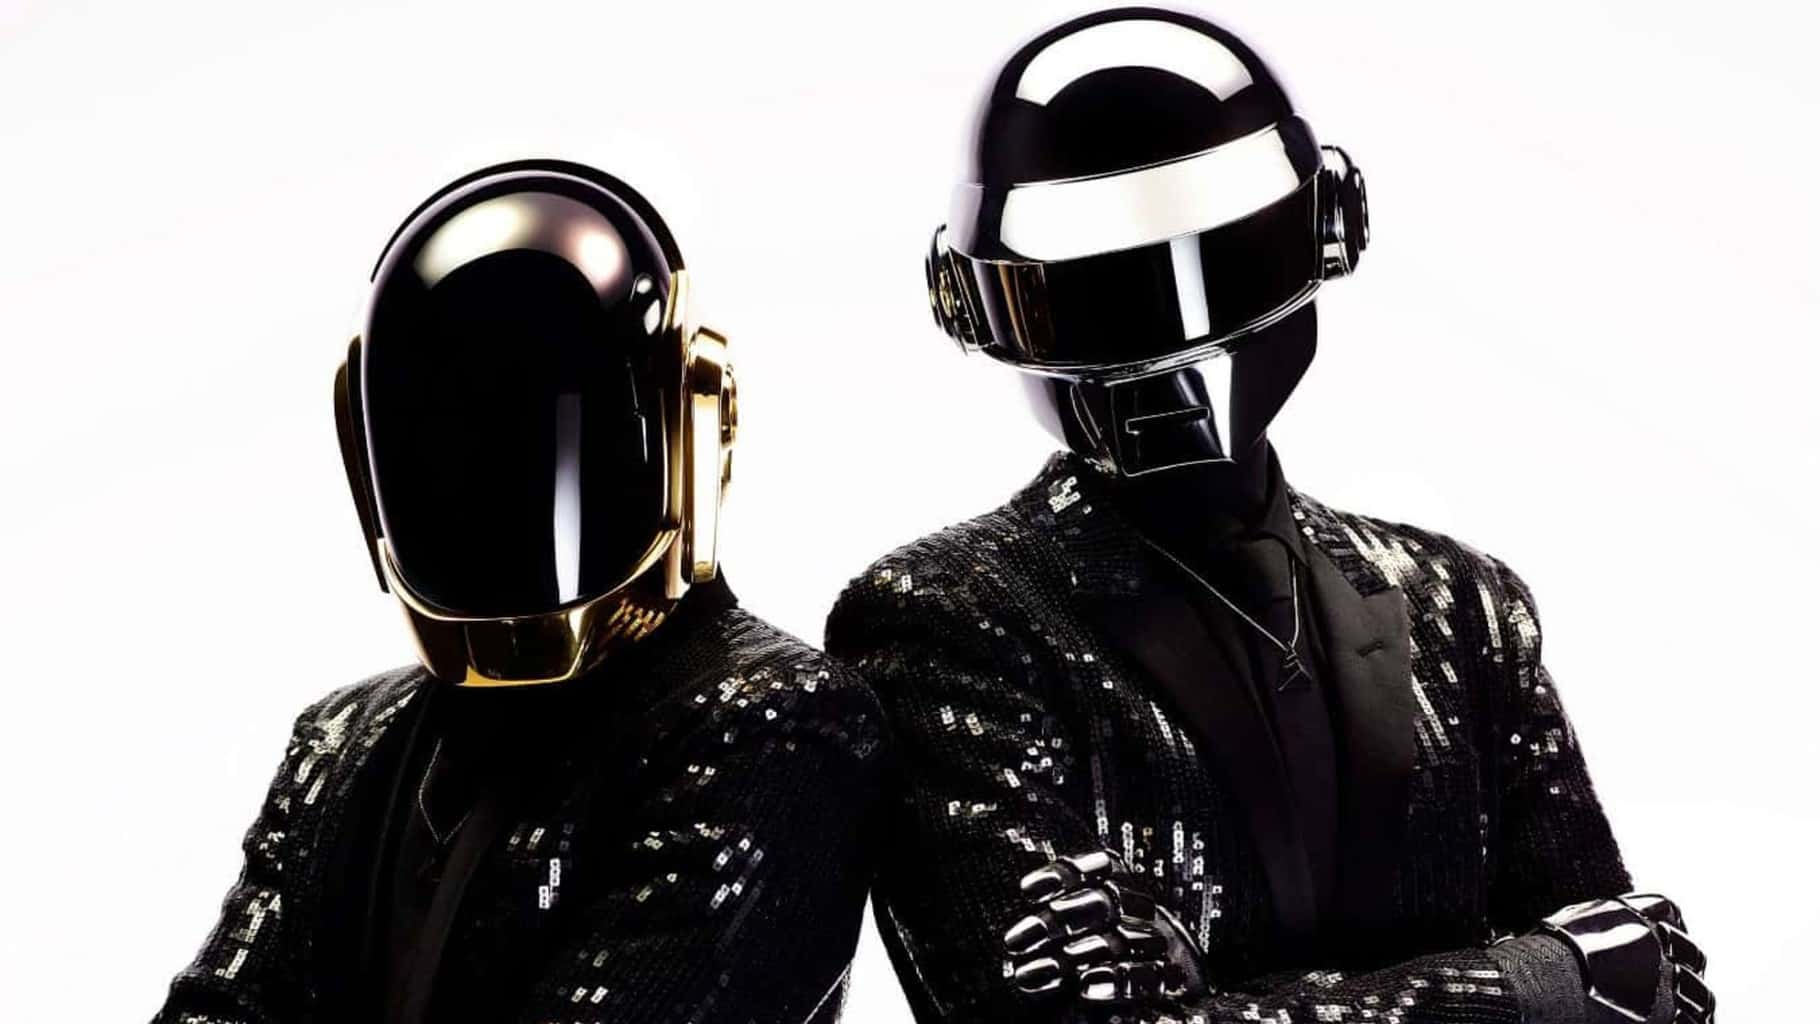 Daft Punk Part Ways After 28 Years as a Duo